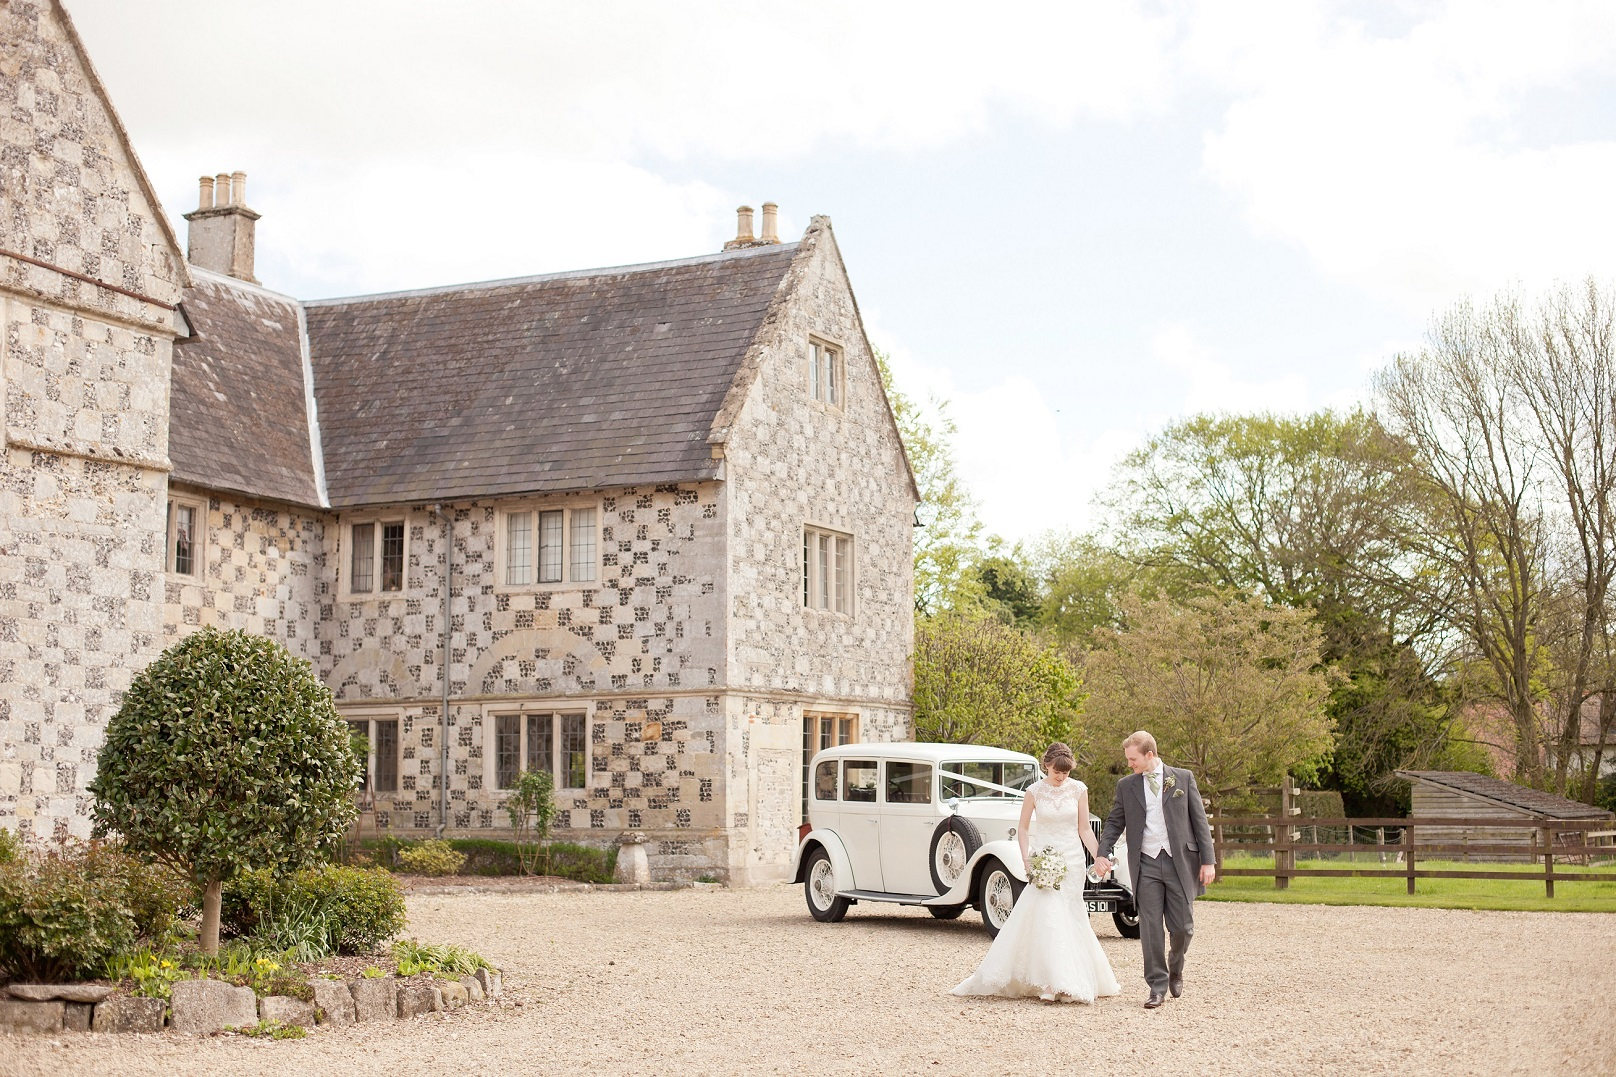 The Manor Barn (Winterbourne Stoke) Wedding Show